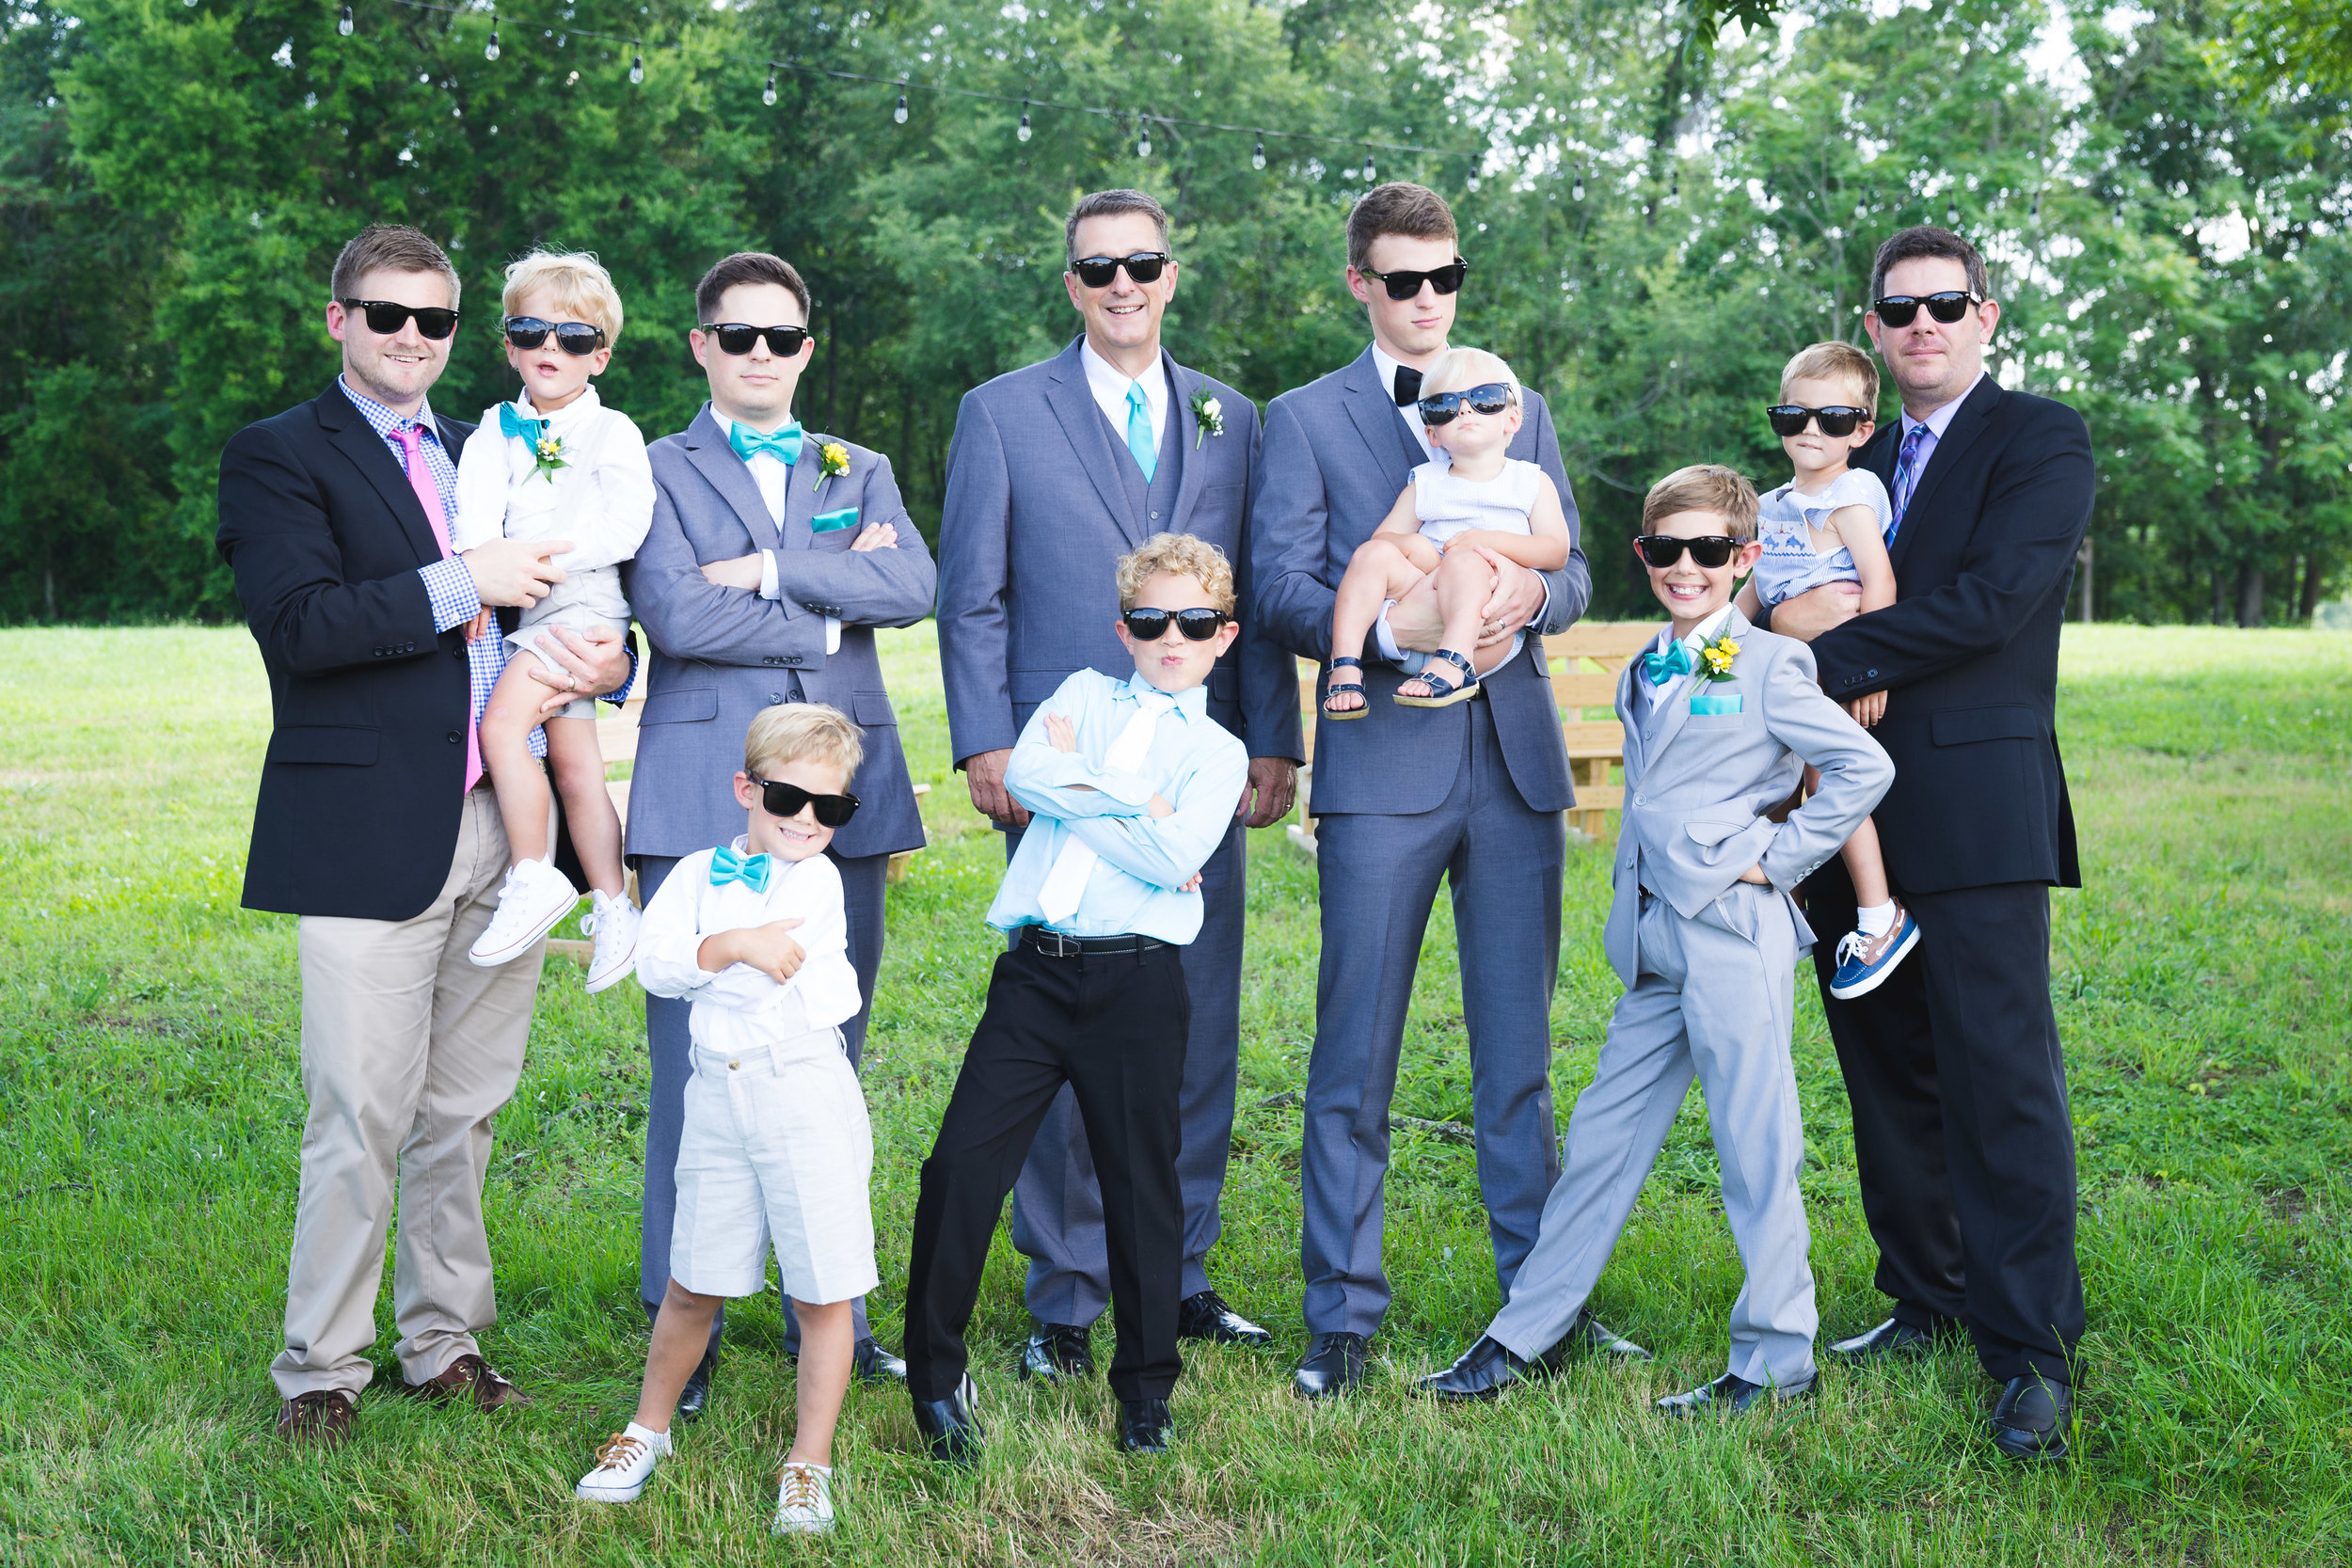 The guys with sunglasses | Windy Hill Wedding and Event Barn in Simpsonville, SC